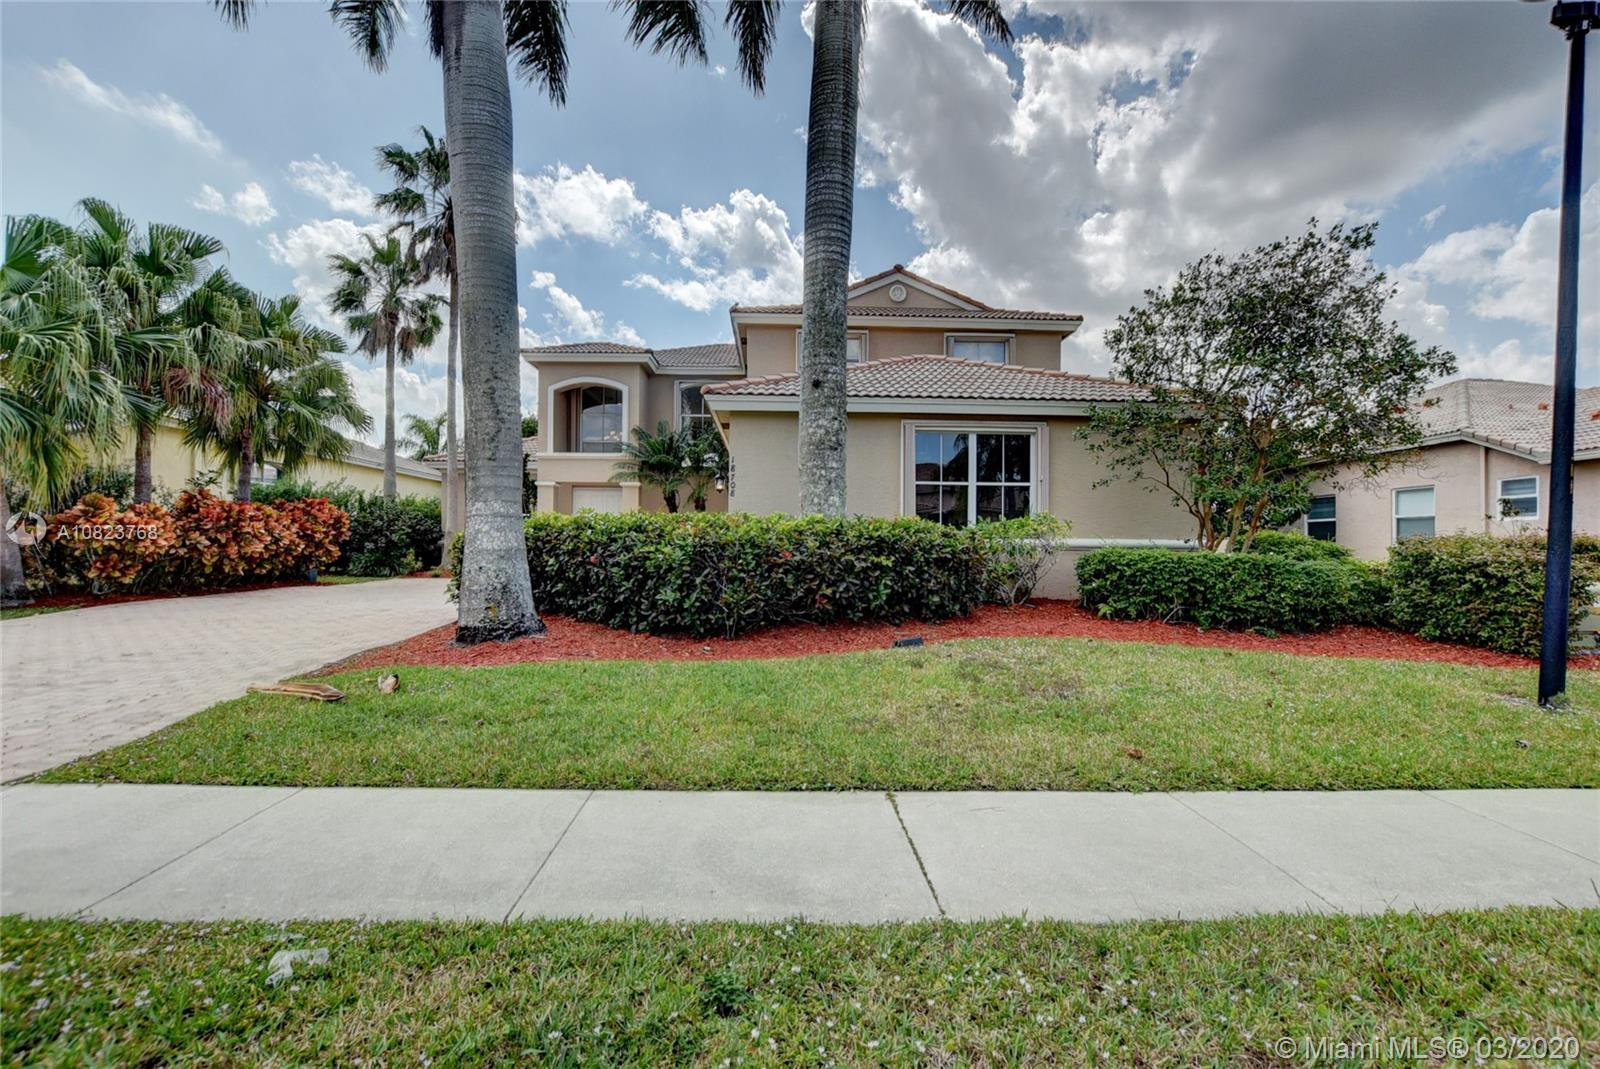 Stunning 5 bedroom, 3.5 bathroom, 3 car garage, lakefront single family home. This beauty features a